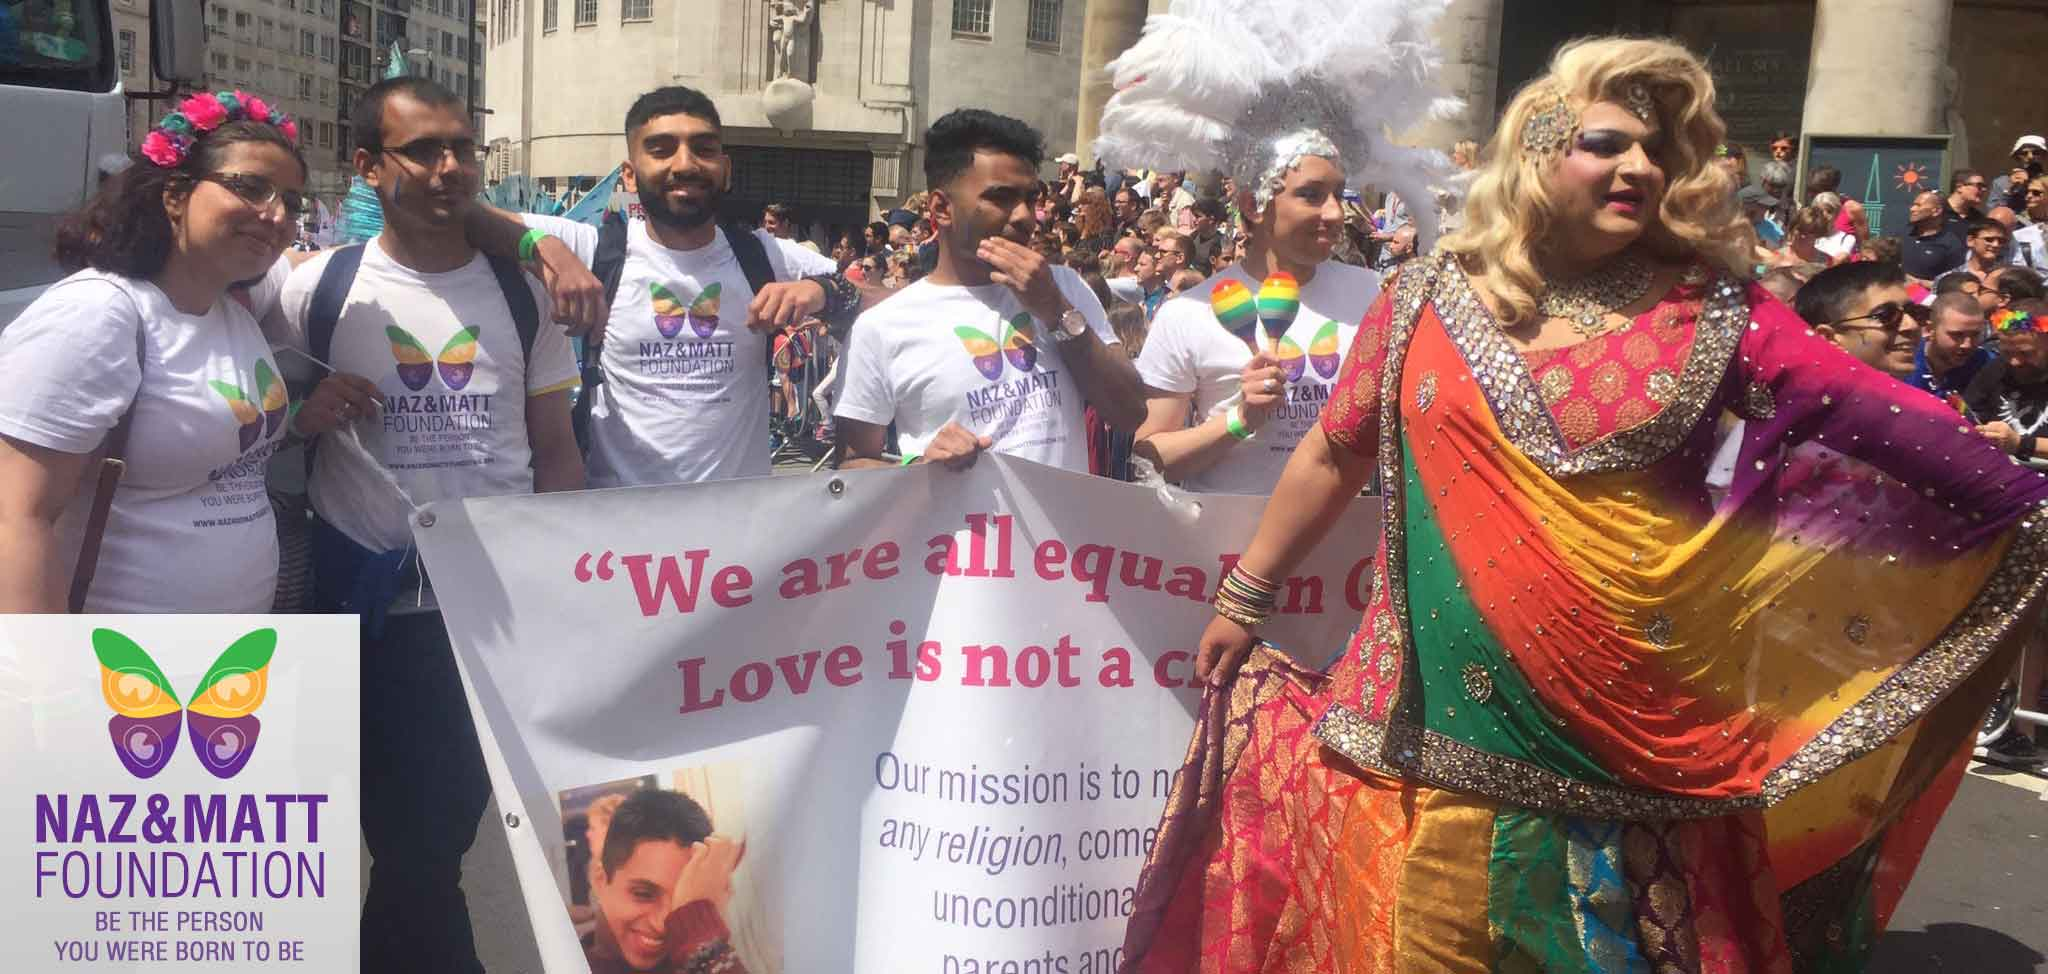 London Pride 2017 - Group shot